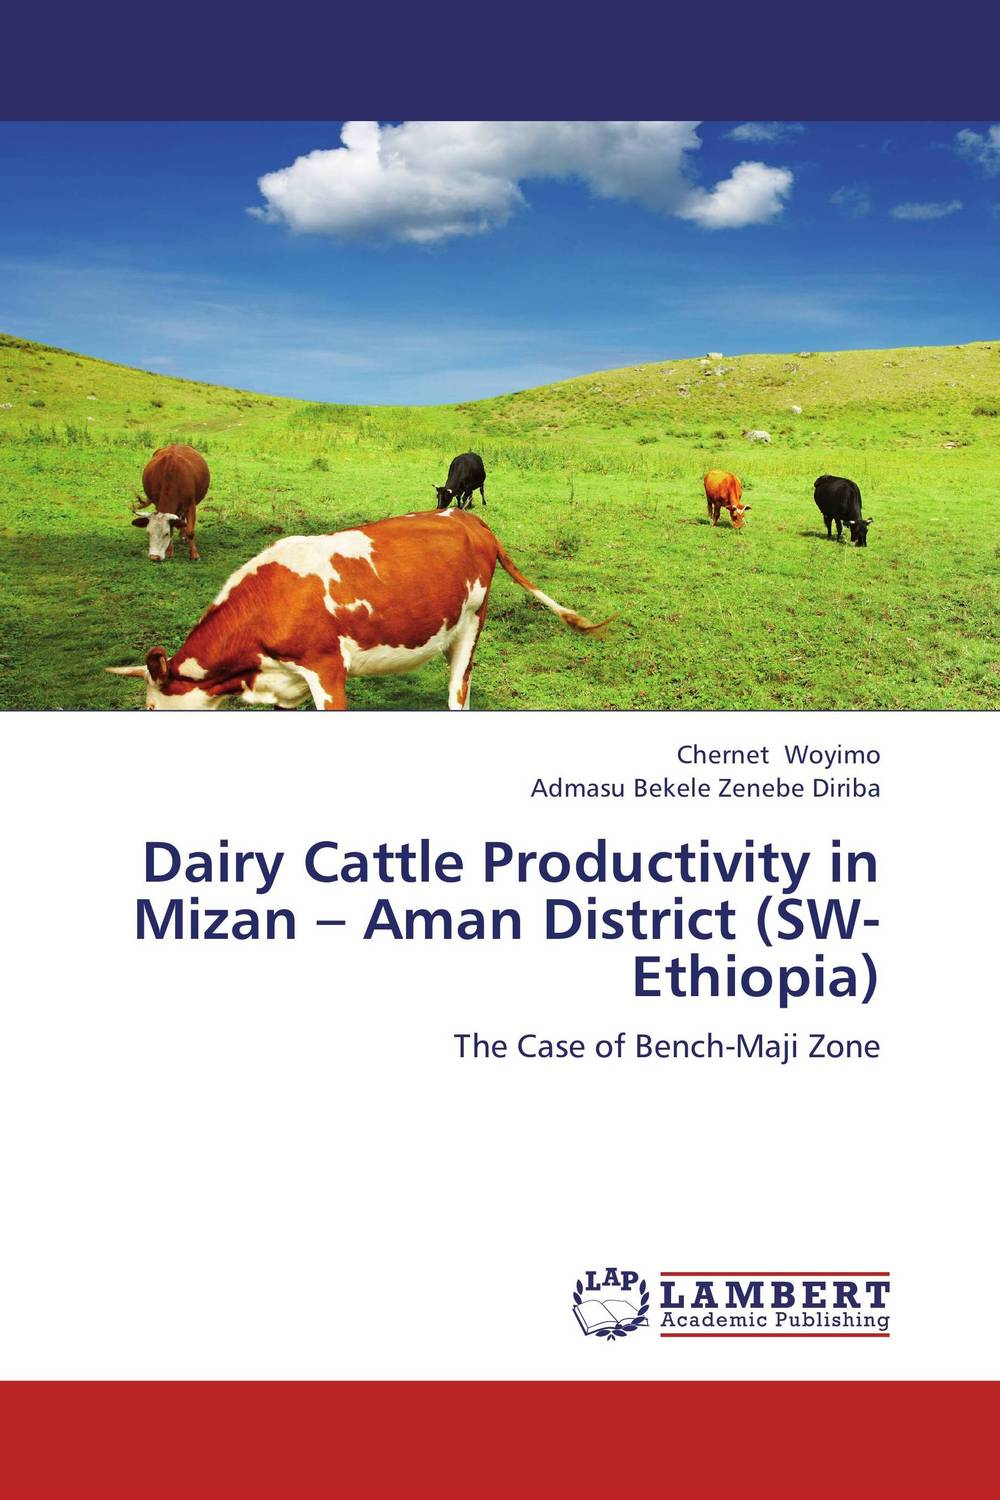 Dairy Cattle Productivity in Mizan – Aman District (SW-Ethiopia) claw disorders in dairy cows under smallholder zero grazing units